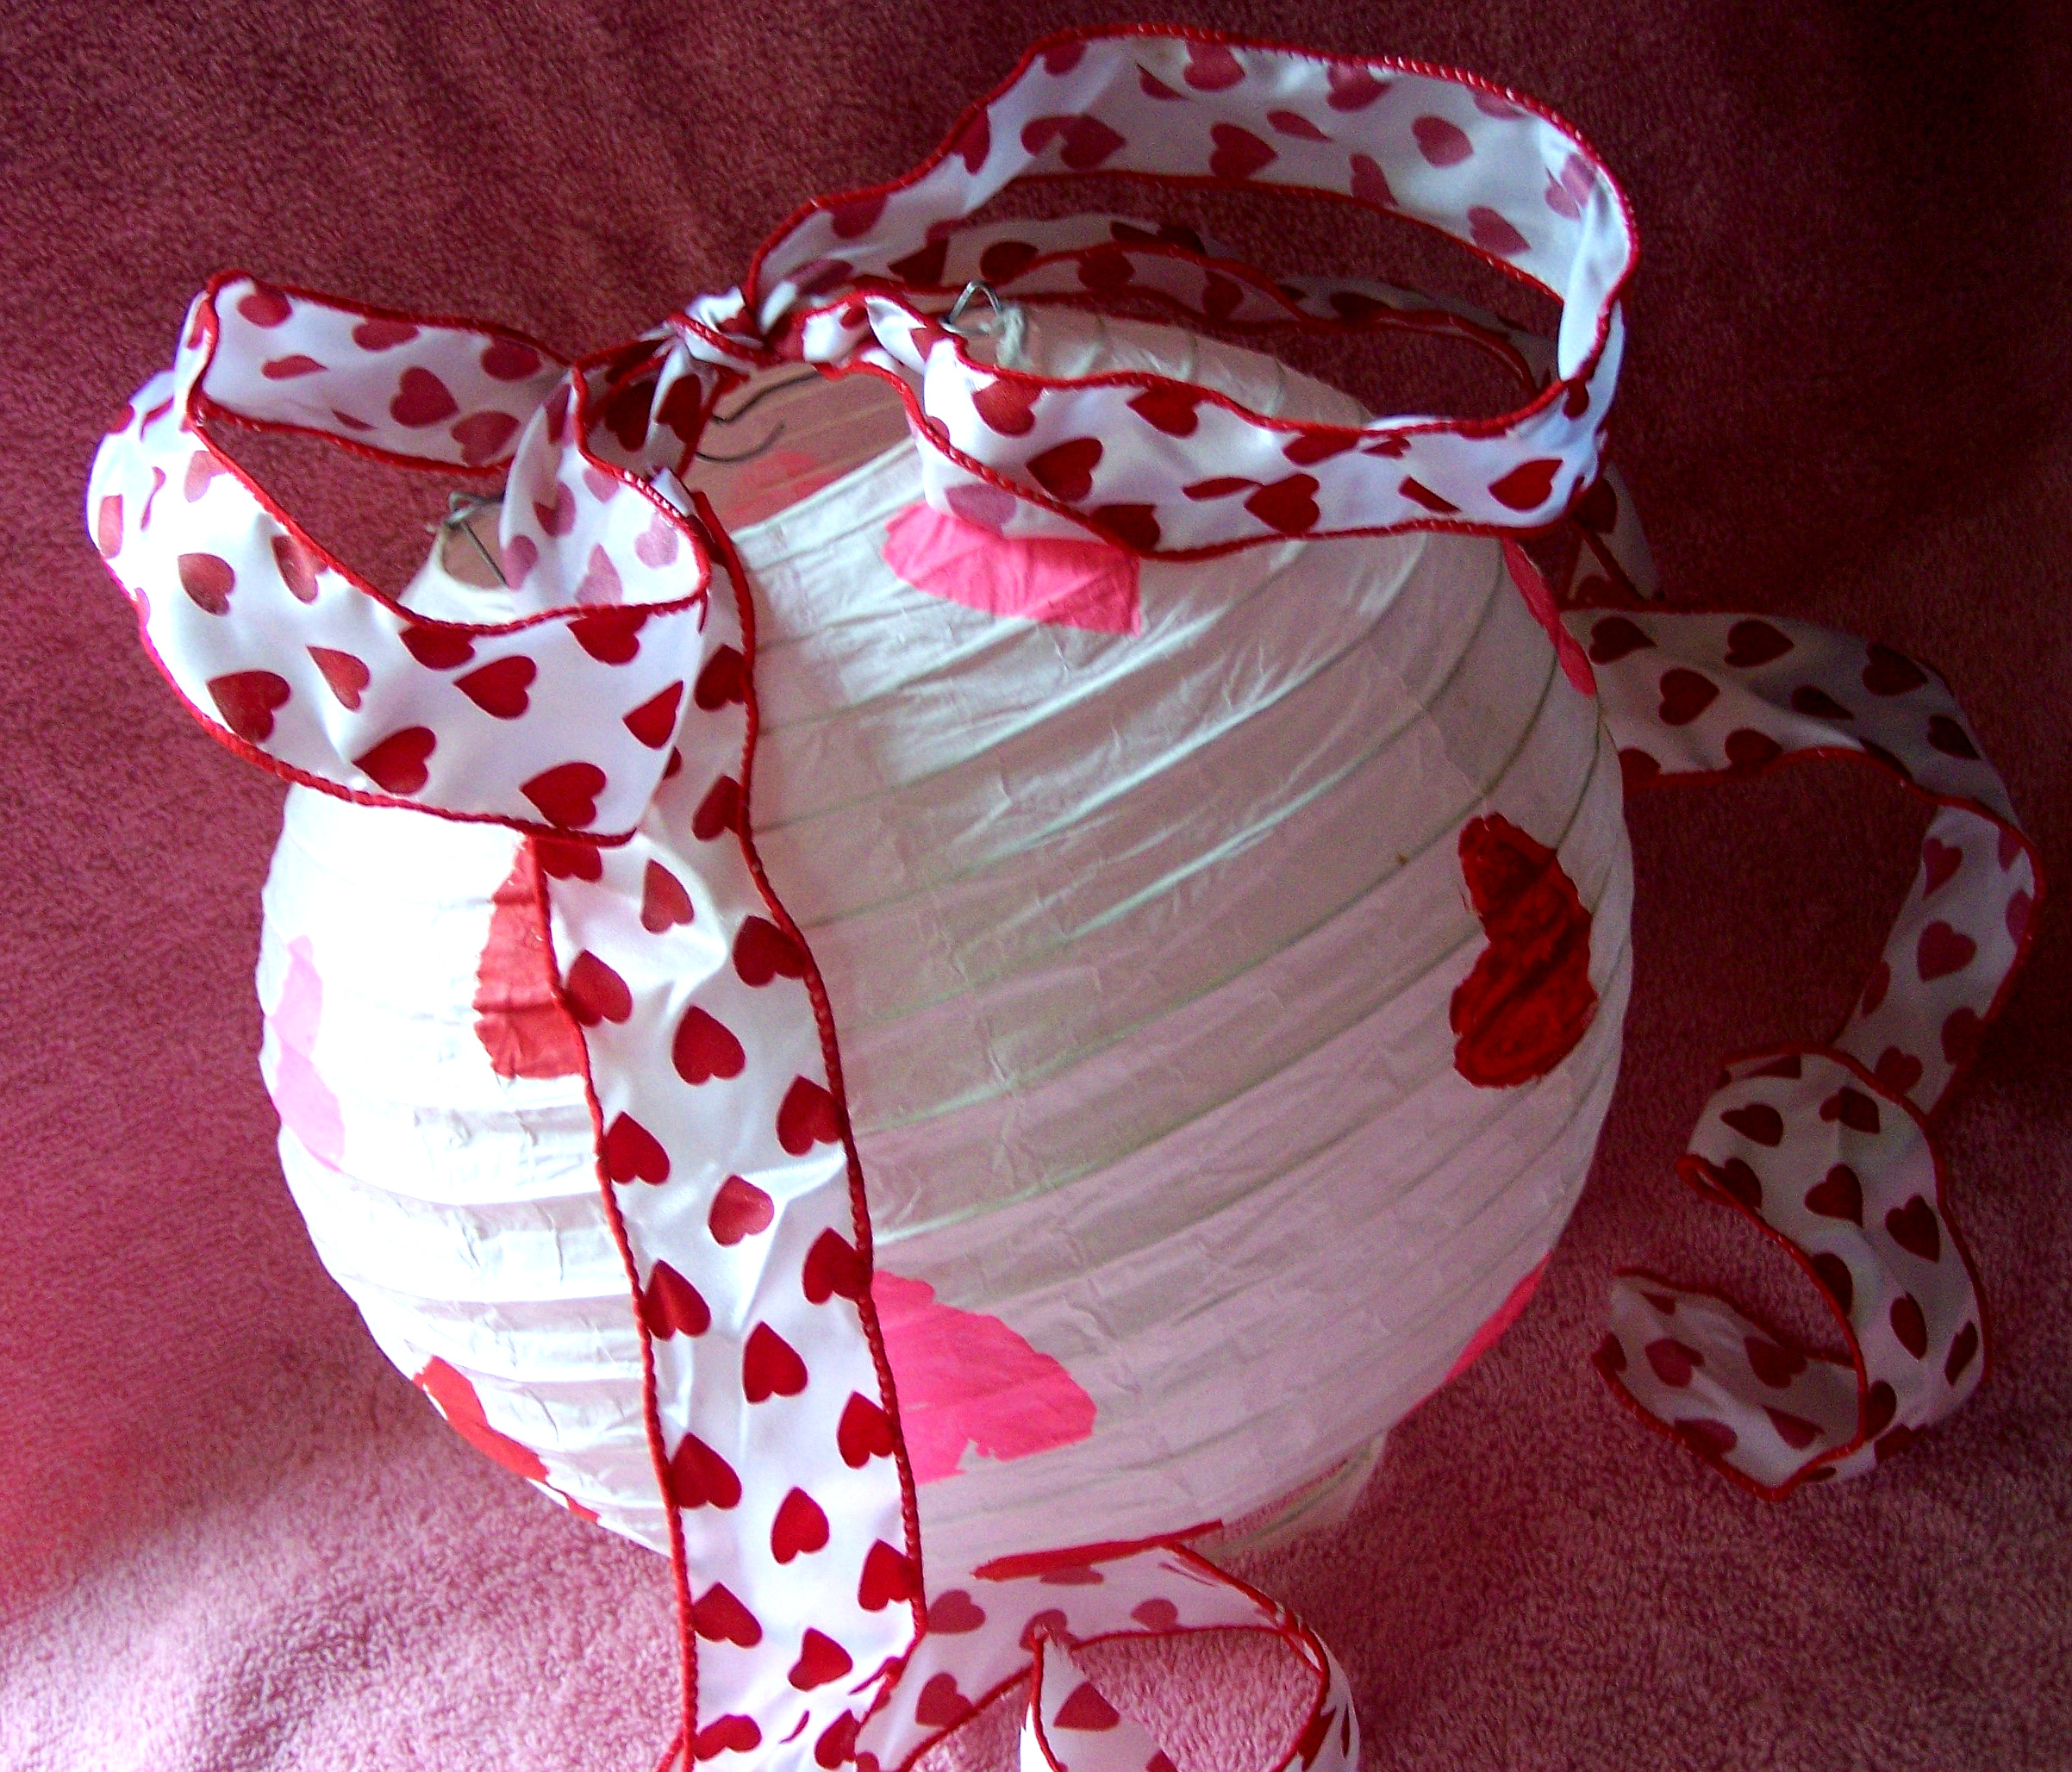 paper lantern sweetheart hearts valentine valentine's lanterns paint painted heart ribbon pretty pink red white craft howto easy quick kids diy fun day